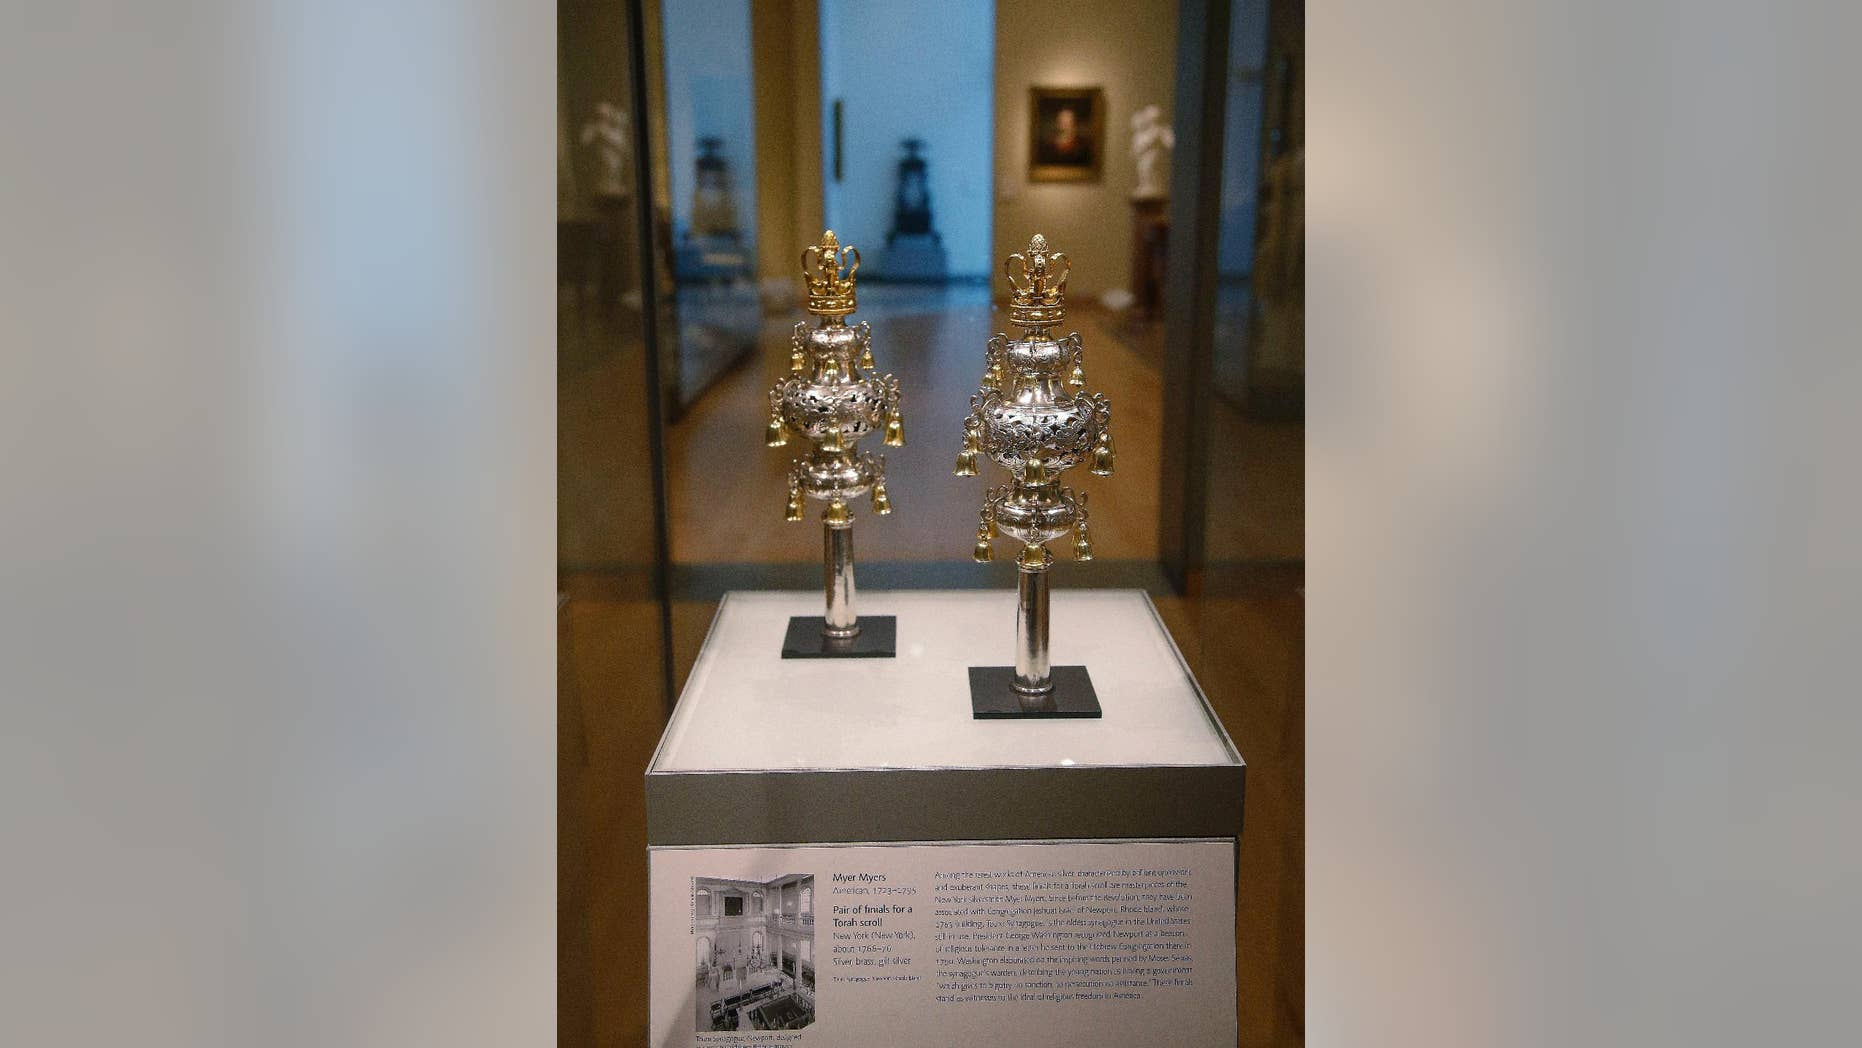 """FILE - In this June 1, 2015, file photo, ceremonial bells belonging to the 250-year-old Touro Synagogue in Newport, R.I., and worth more than $7 million are on display at the Museum of Fine Arts in Boston. A federal judge overseeing a trial over control of the nation's oldest synagogue and ceremonial bells said on Friday, Sept. 18, there is no """"smoking gun,"""" in the battle between the congregation that worships at the 250-year-old Touro Synagogue in Newport and the nation's first Jewish congregation, in New York. (AP Photo/Stephan Savoia, File)"""